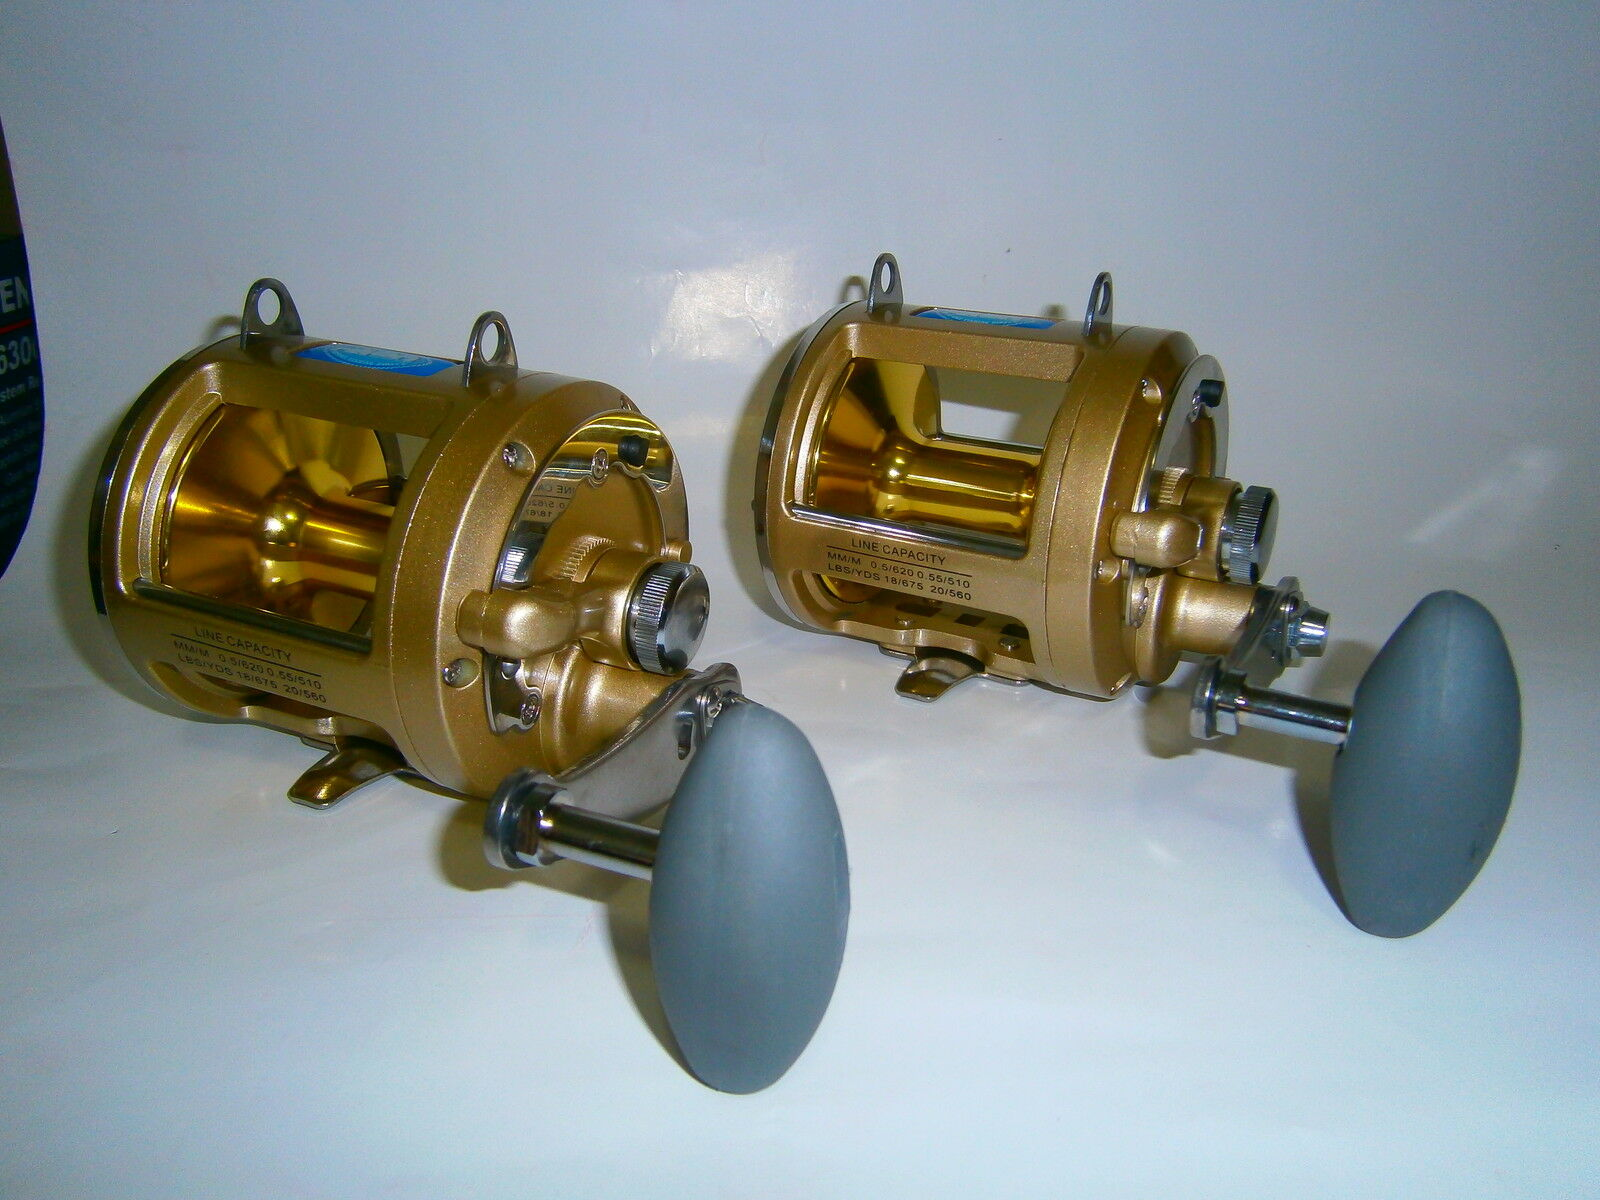 2 X LD10000 (VI) BIG GAME REEL Model up from LD9000 with NEW BONUS REEL BAG